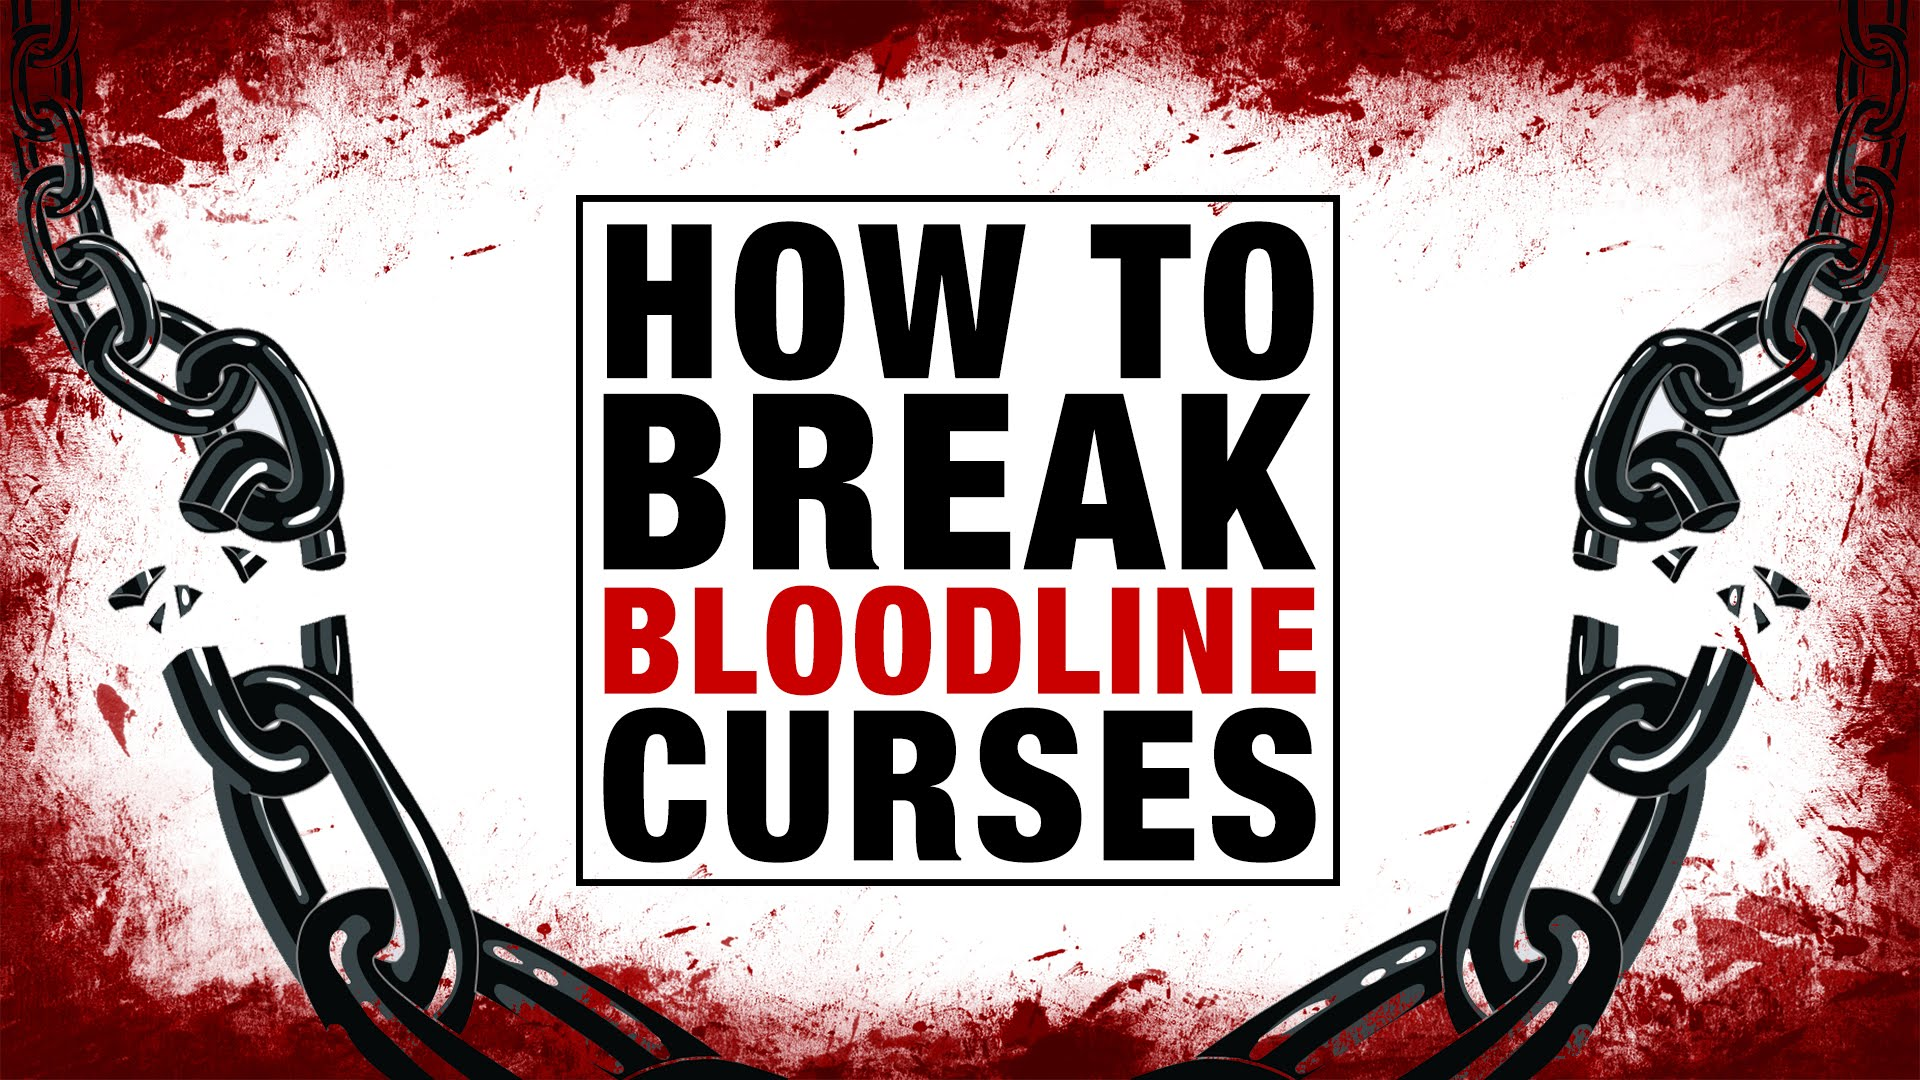 How to Break Generational Bloodline Curses | John Turnipseed on Sid